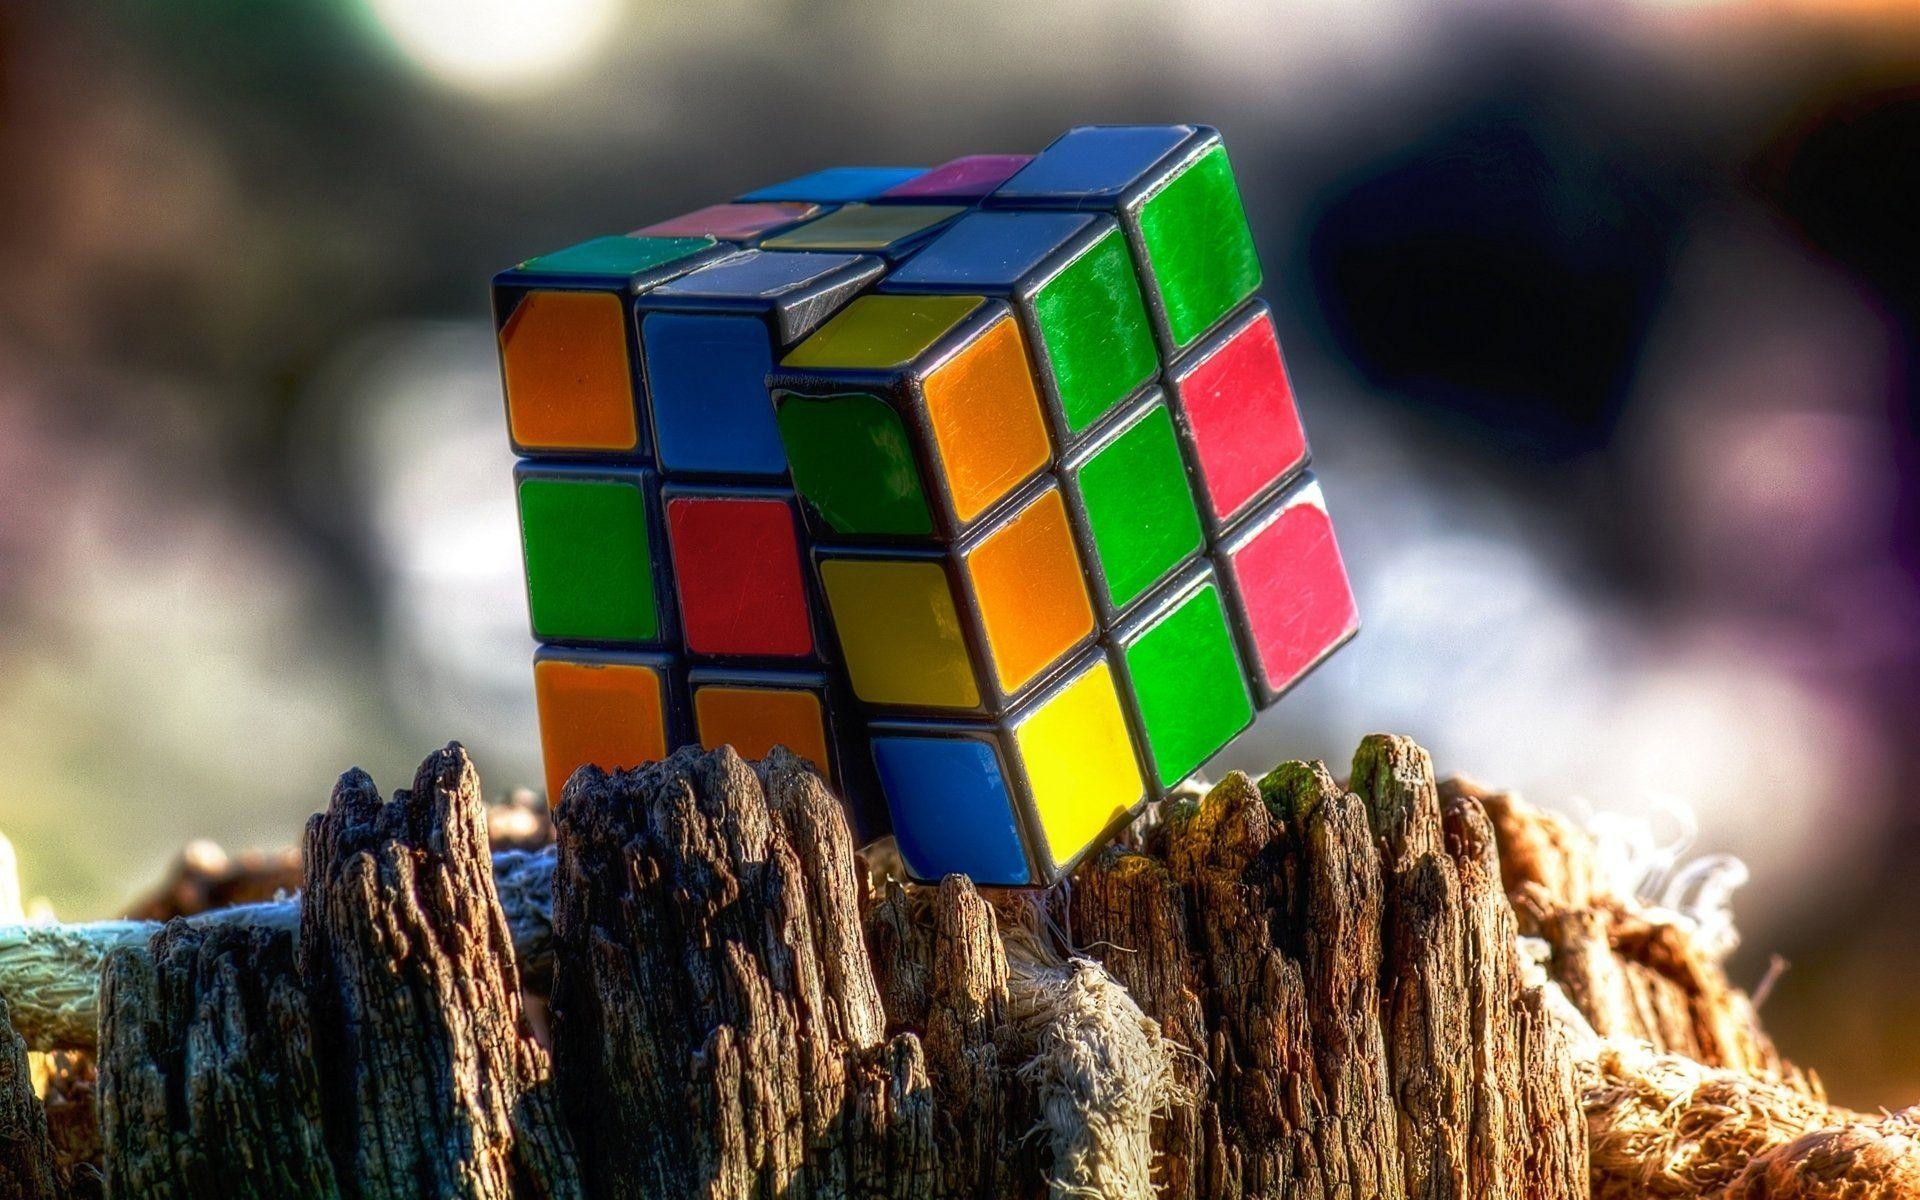 15 Rubik's Cube HD Wallpapers | Backgrounds – Wallpaper Abyss